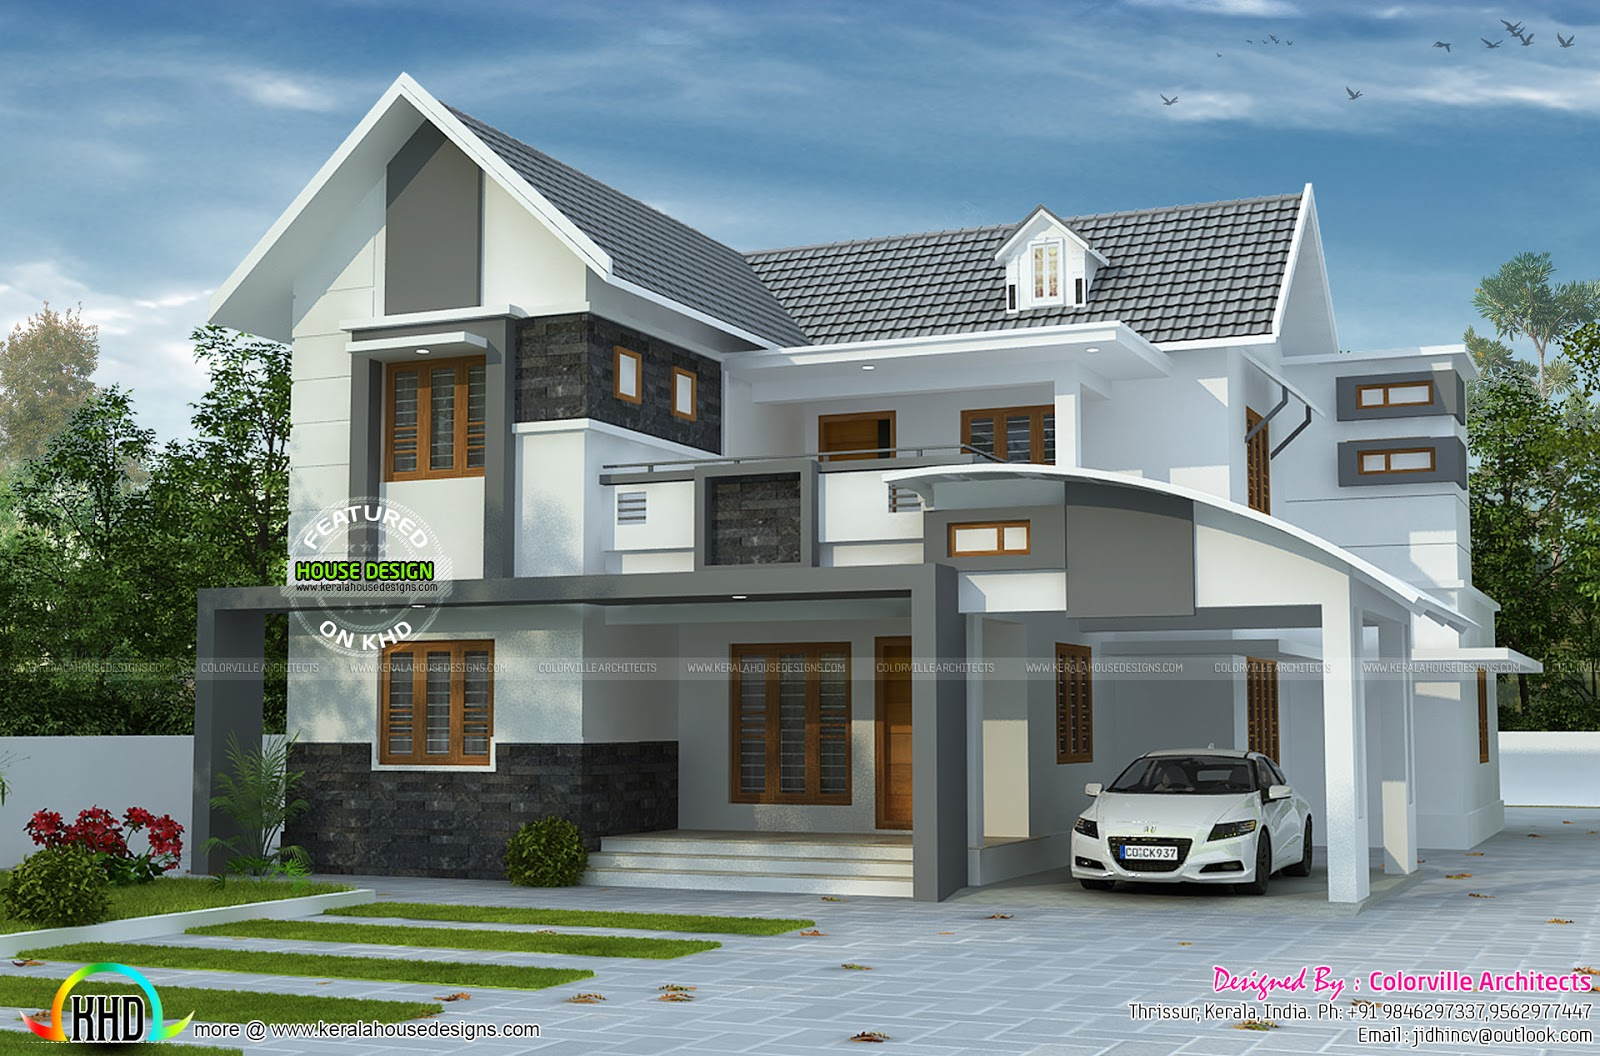 House plan by colorville architects kerala home design for House architecture